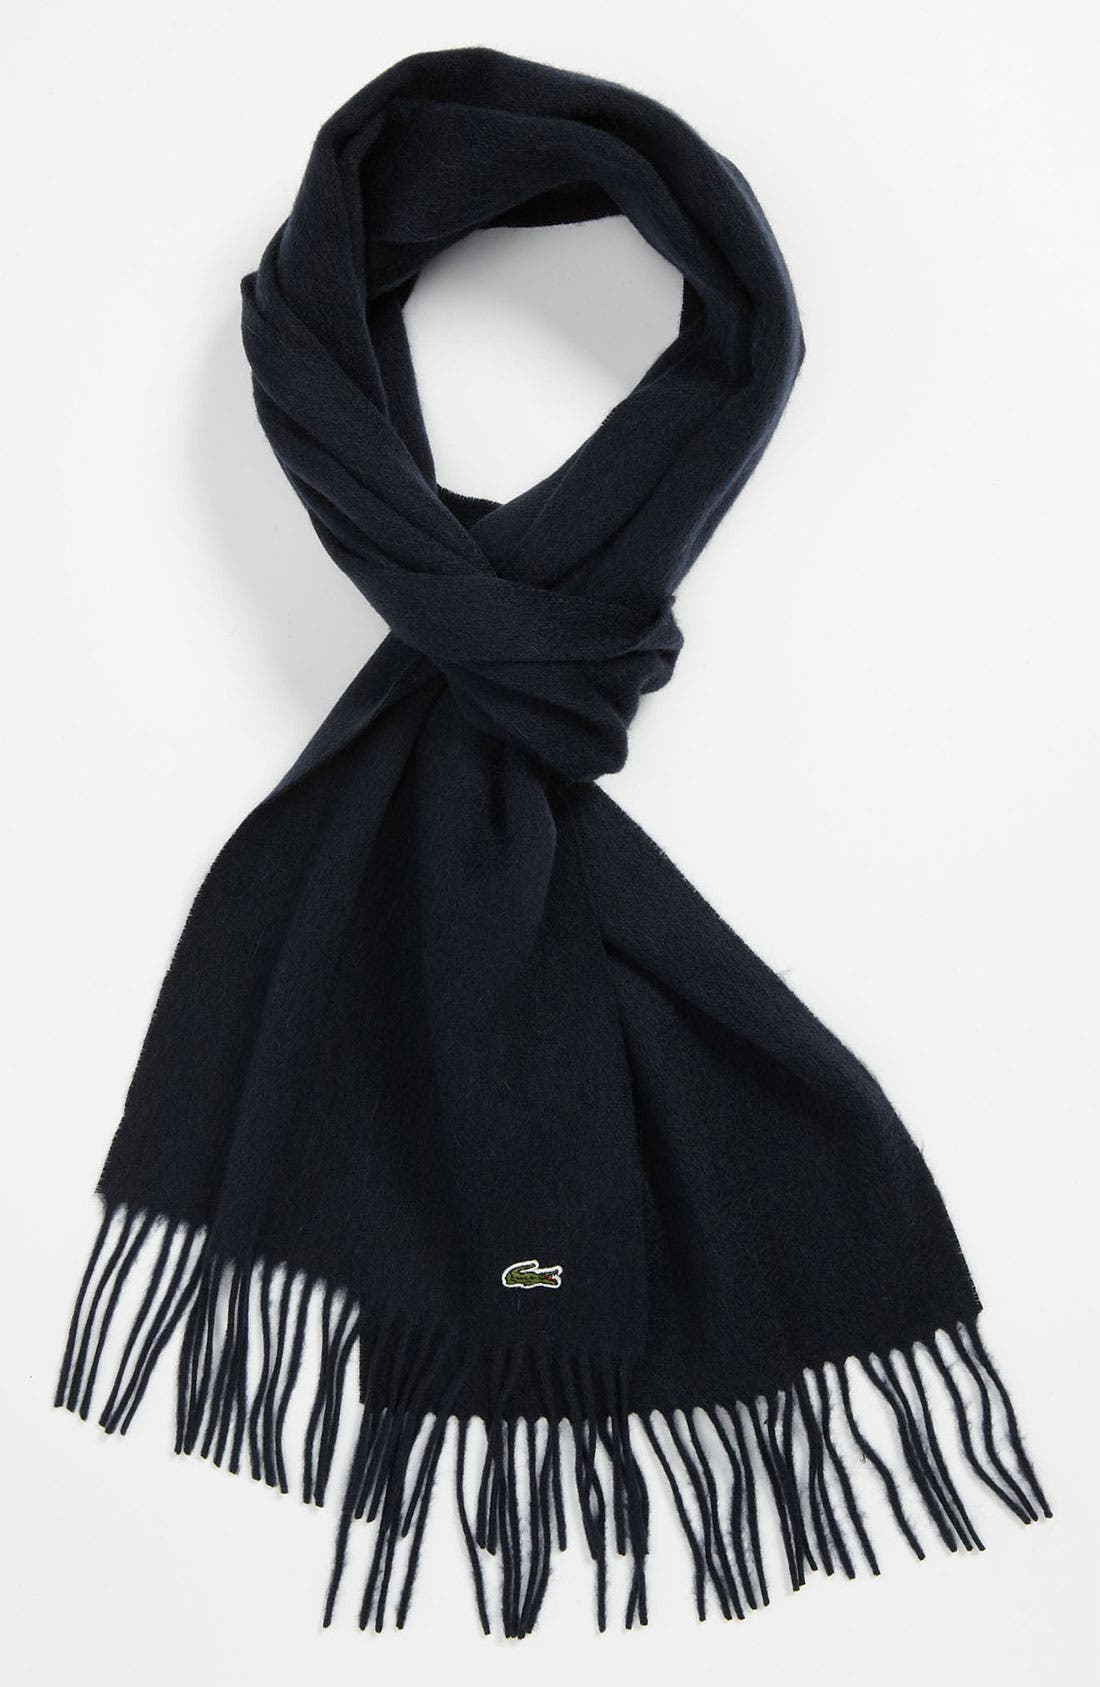 Alternate Image 1 Selected - Lacoste Wool & Cashmere Scarf